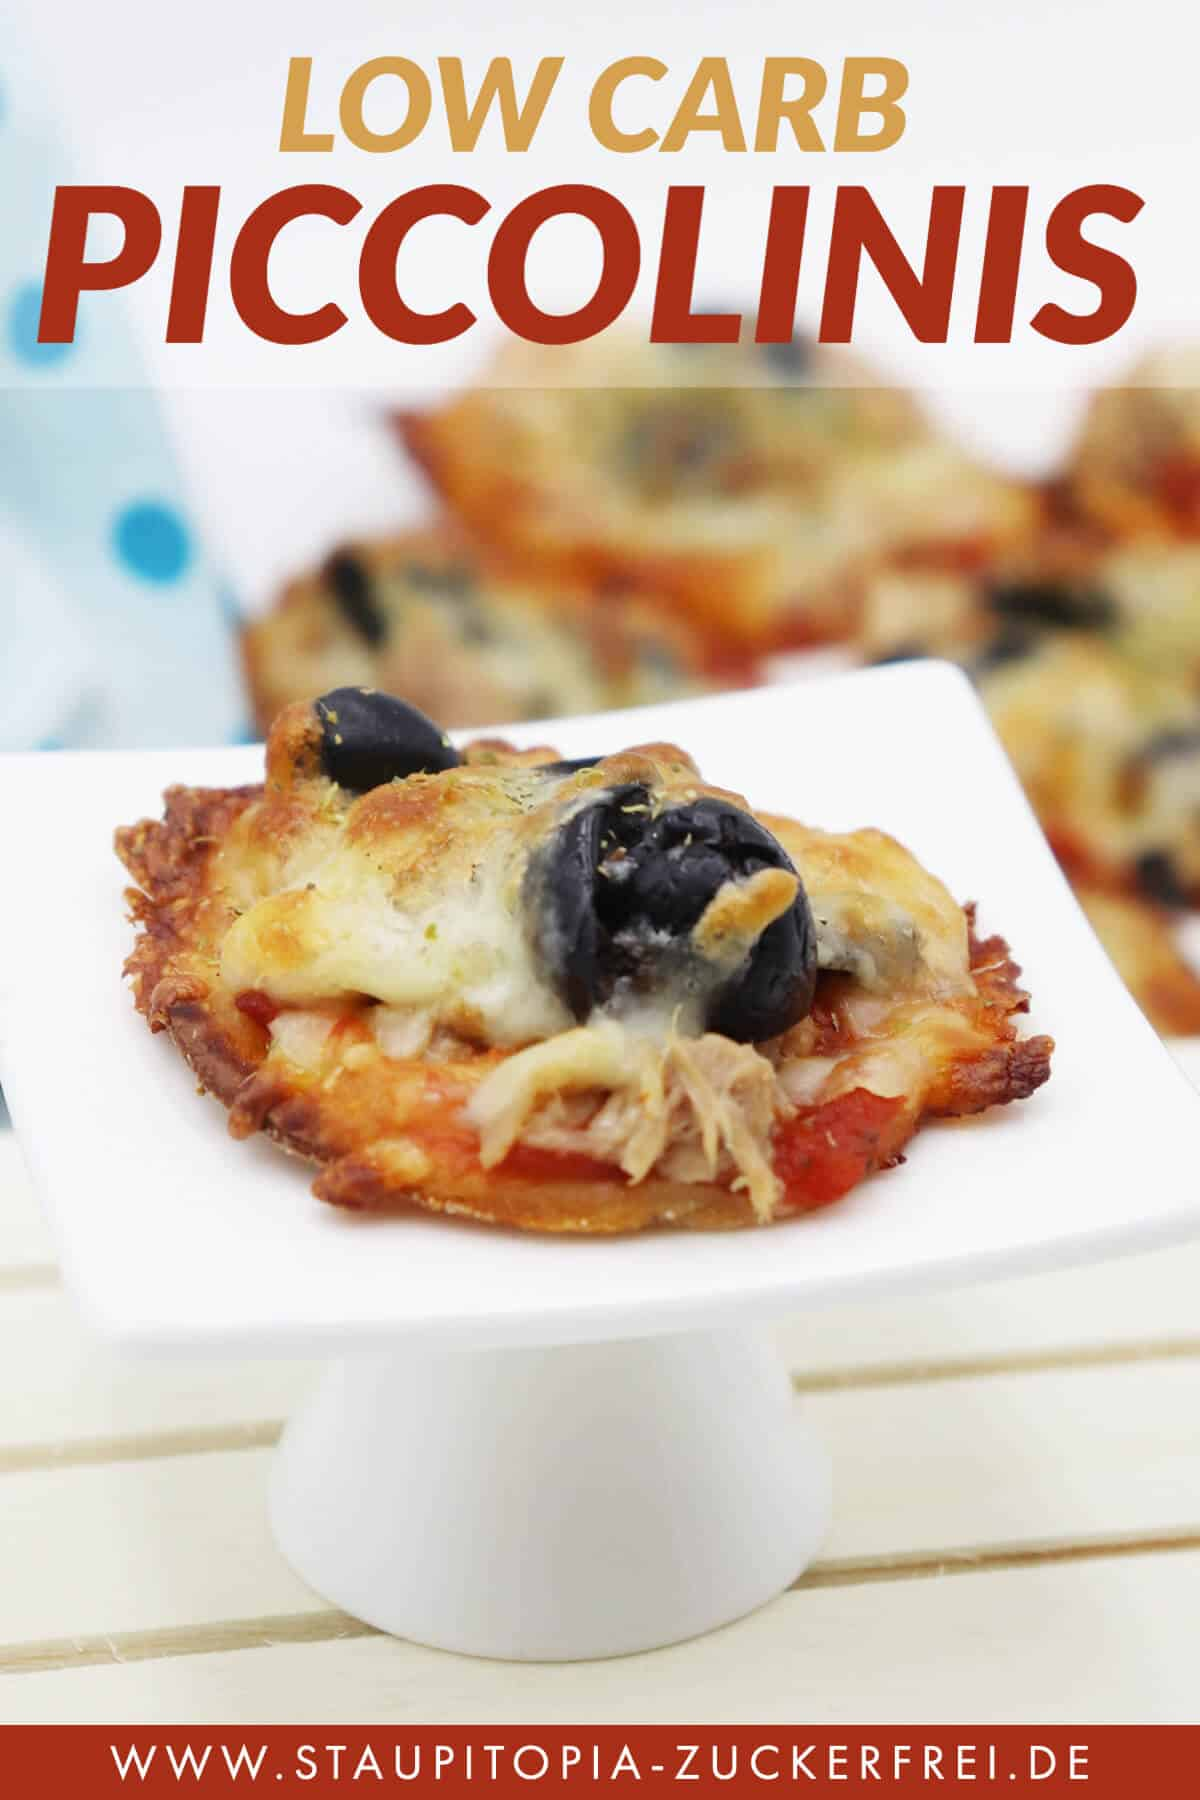 Low Carb Piccolinis Die Mini Pizzen Ohne Kohlenhydrate